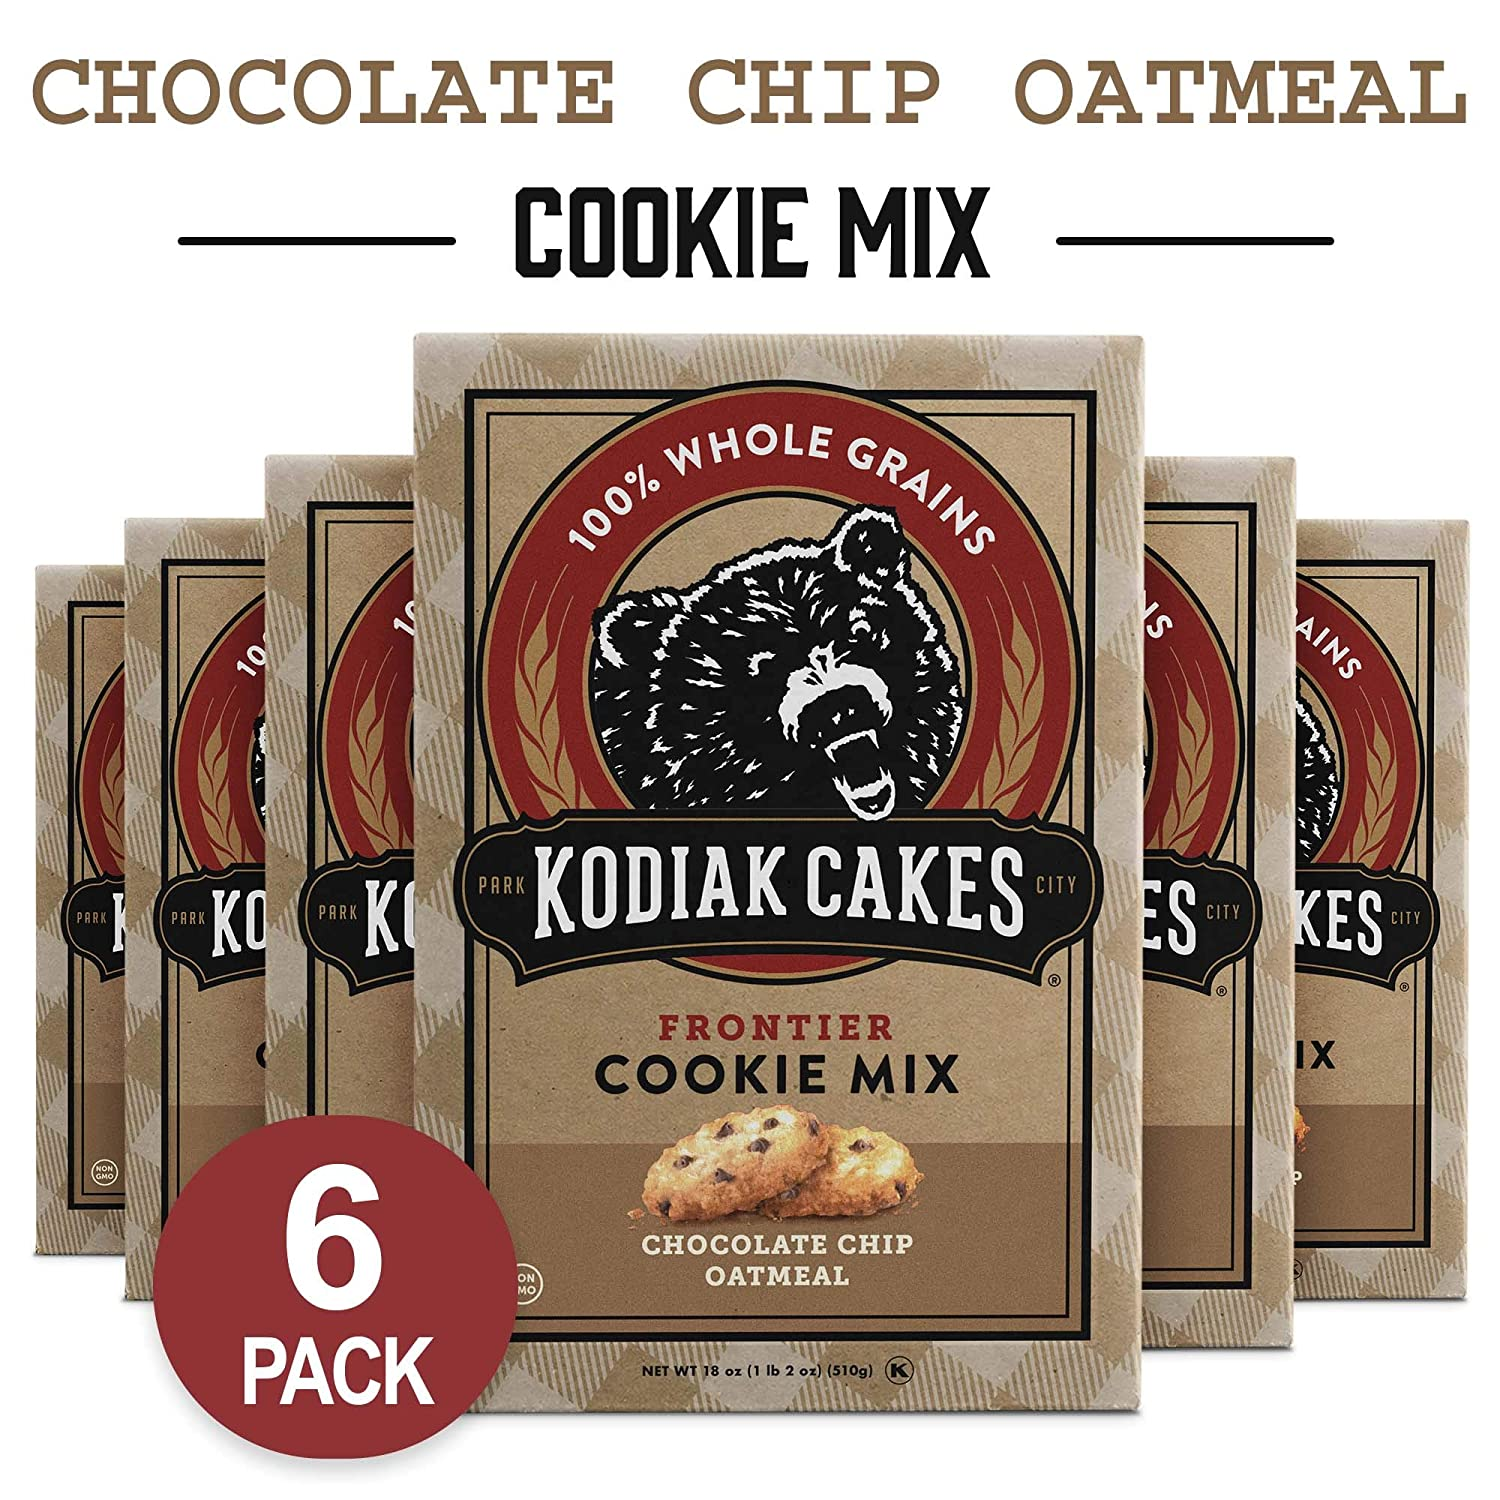 Kodiak Cakes Chocolate Chip Oatmeal Cookie Mix, 18,Ounce Boxes (Pack of 6)  (Packaging May Vary)